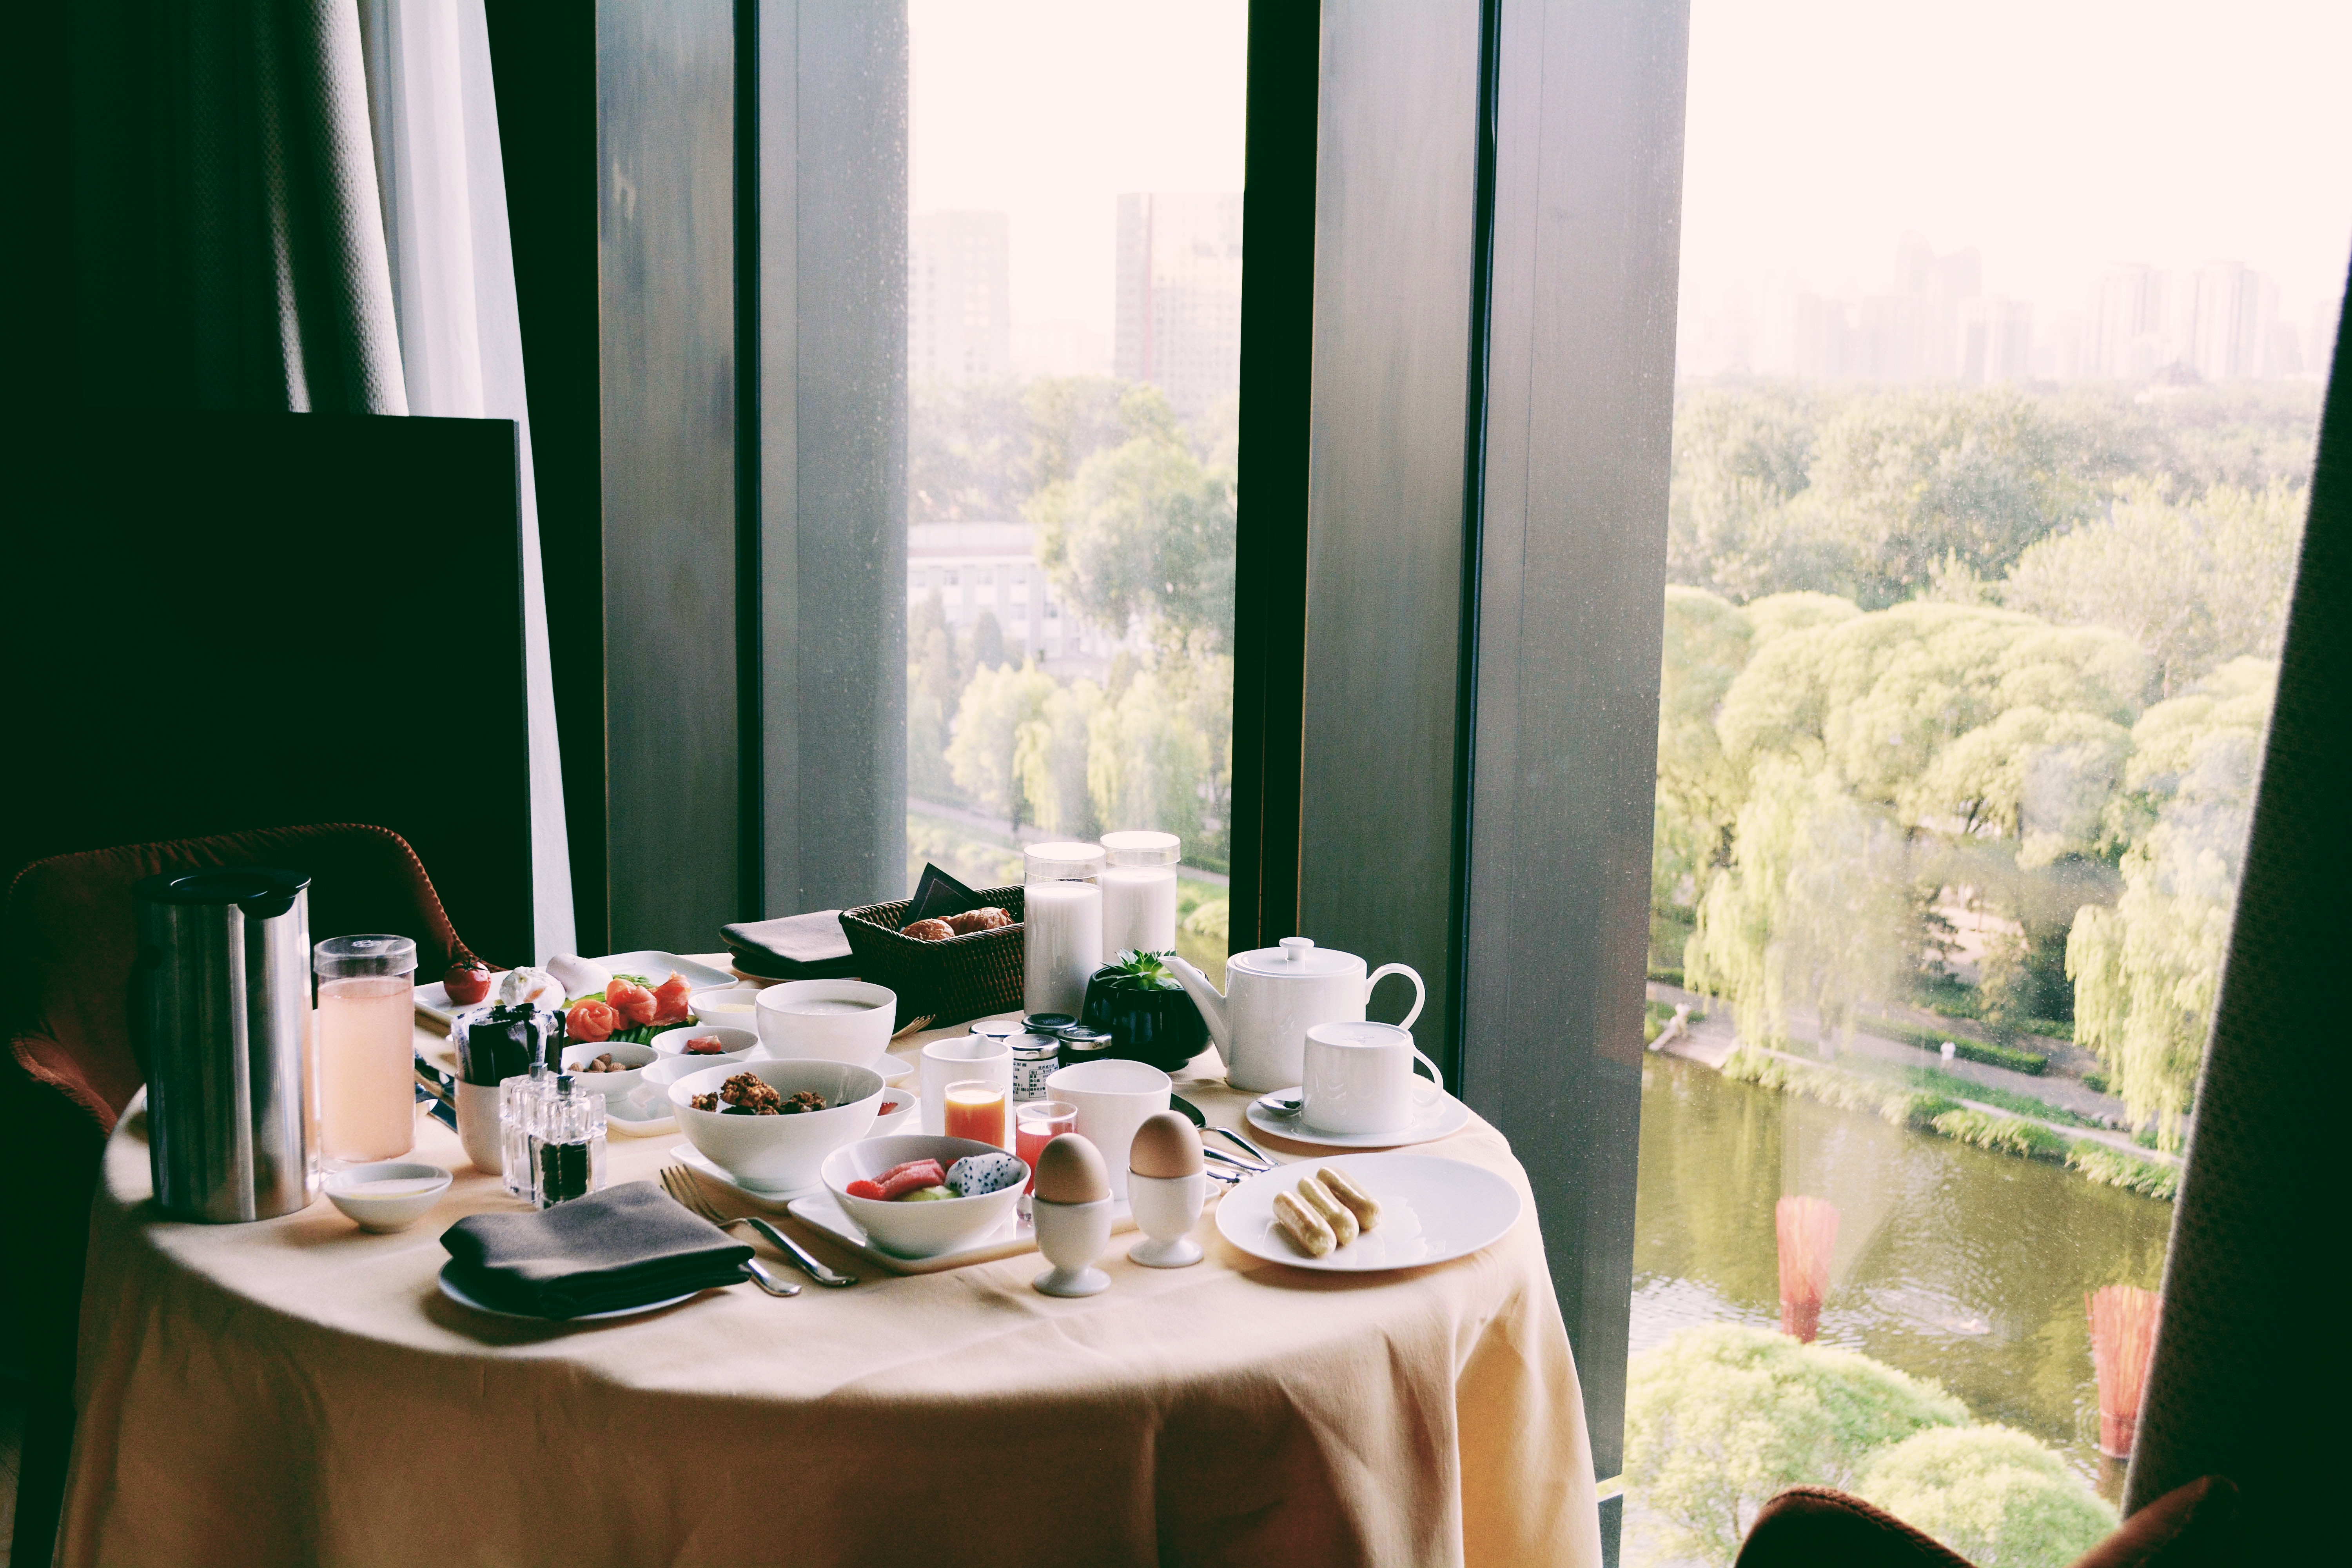 nastia_liukin_beijing_olympic_gymnast_bulgari_hotel_china_guide